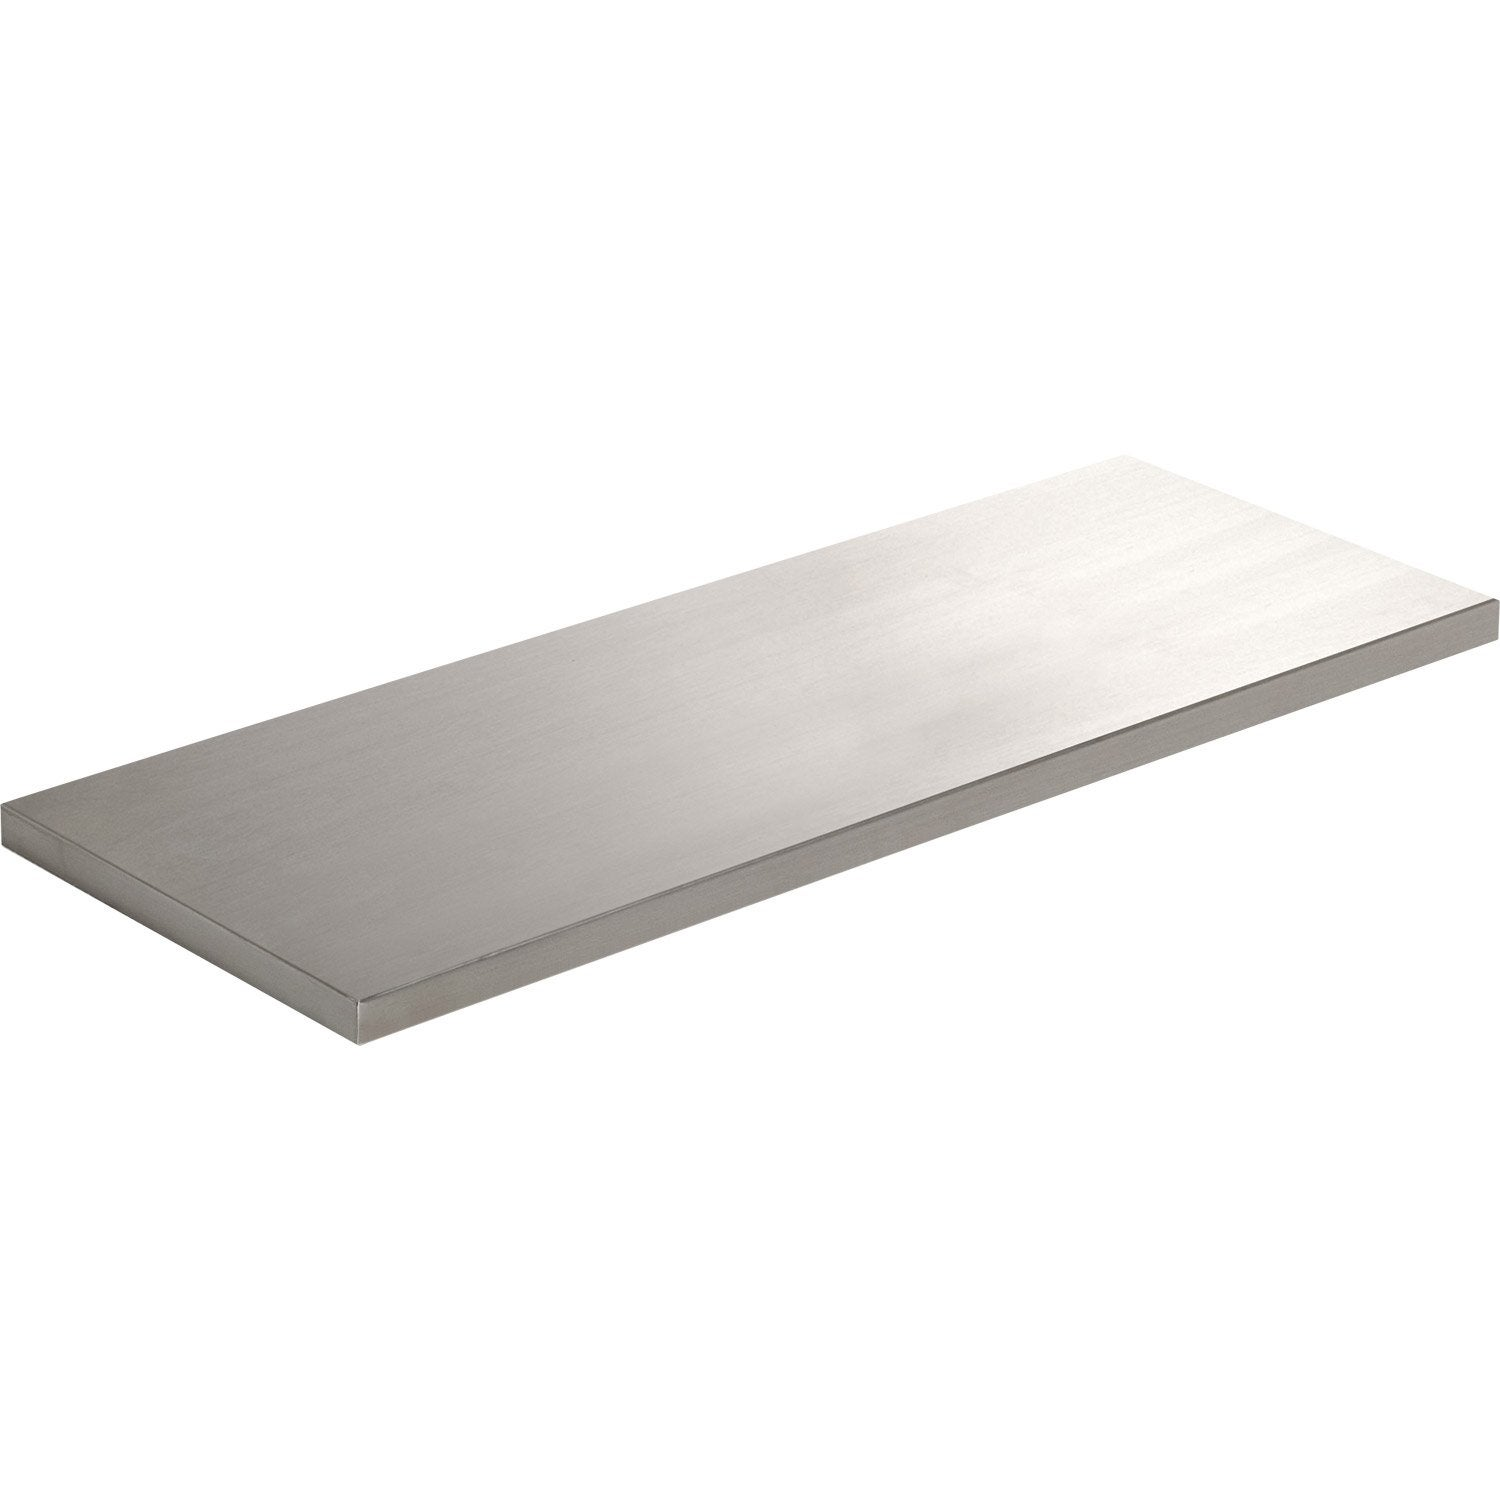 Etag re murale inox l 60 x p 20 cm mm leroy merlin - Tablettes murales leroy merlin ...